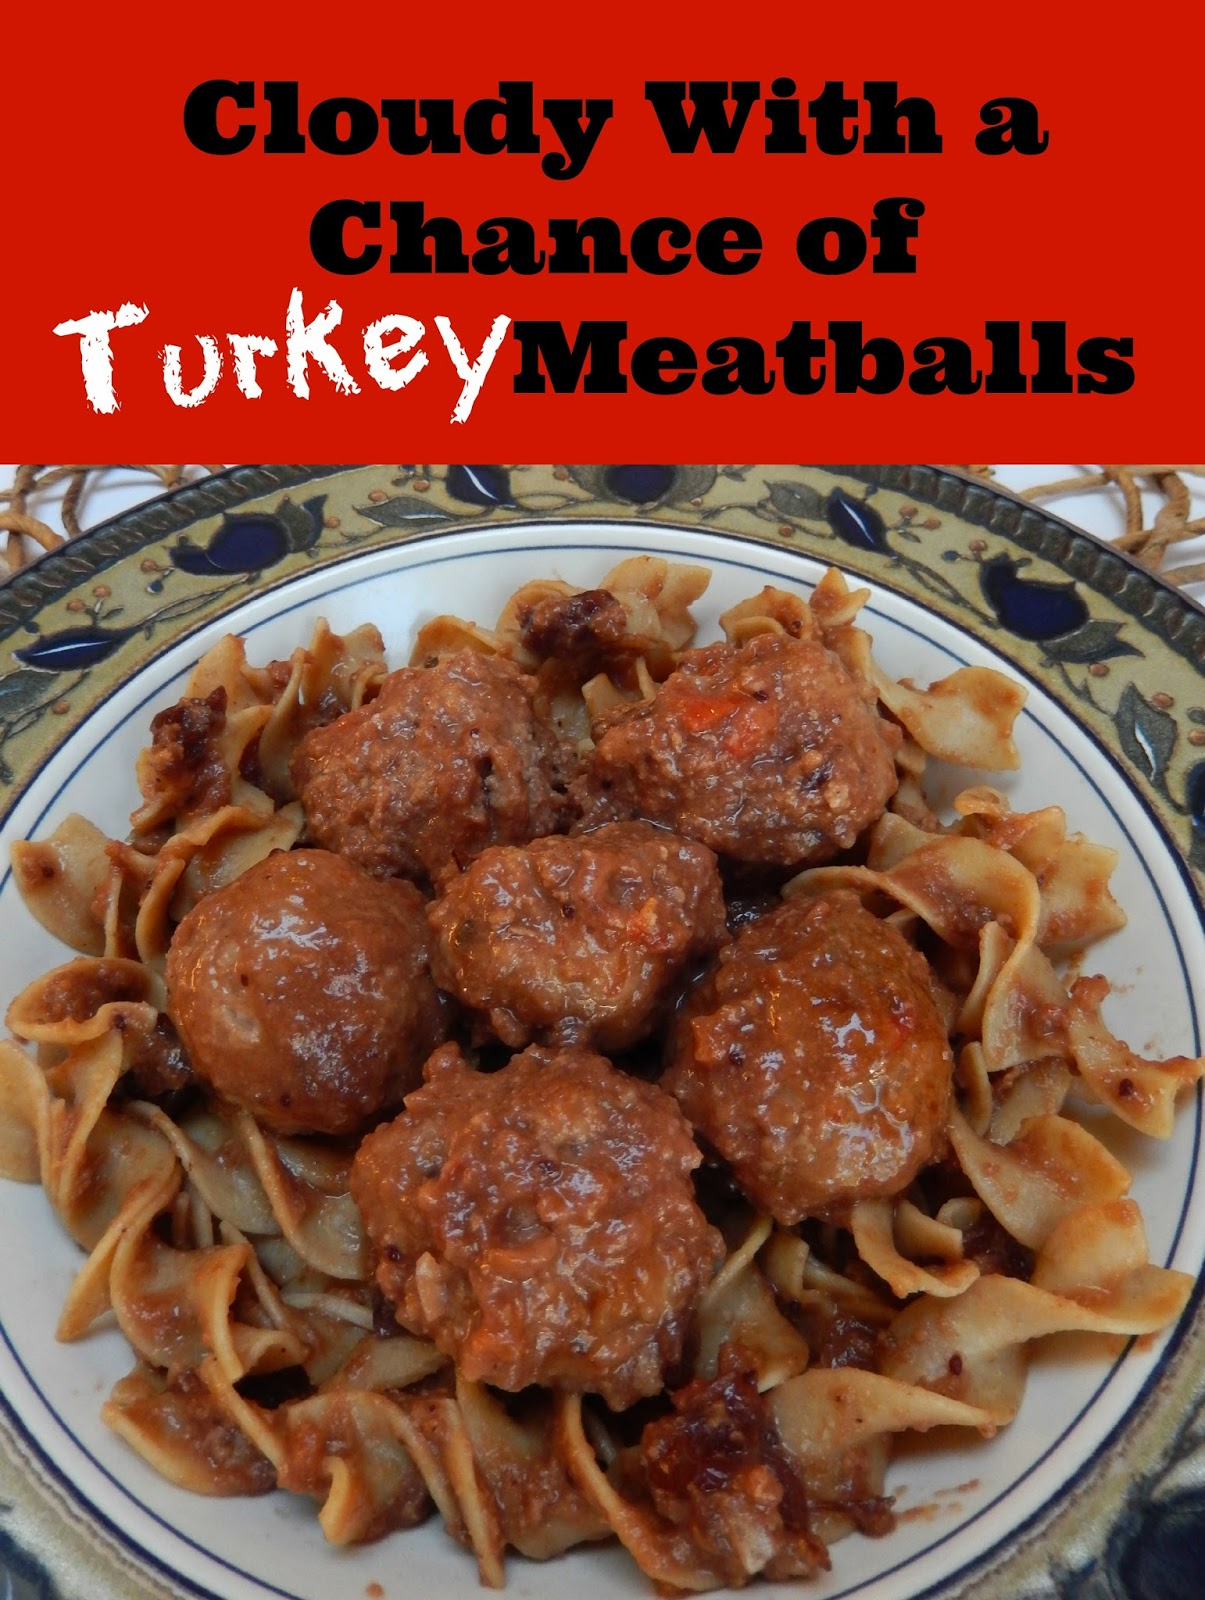 Cloudy With A Chance of Turkey Meatballs: Sweet and Sour Turkey Meatballs by Ms. Toody Goo Shoes